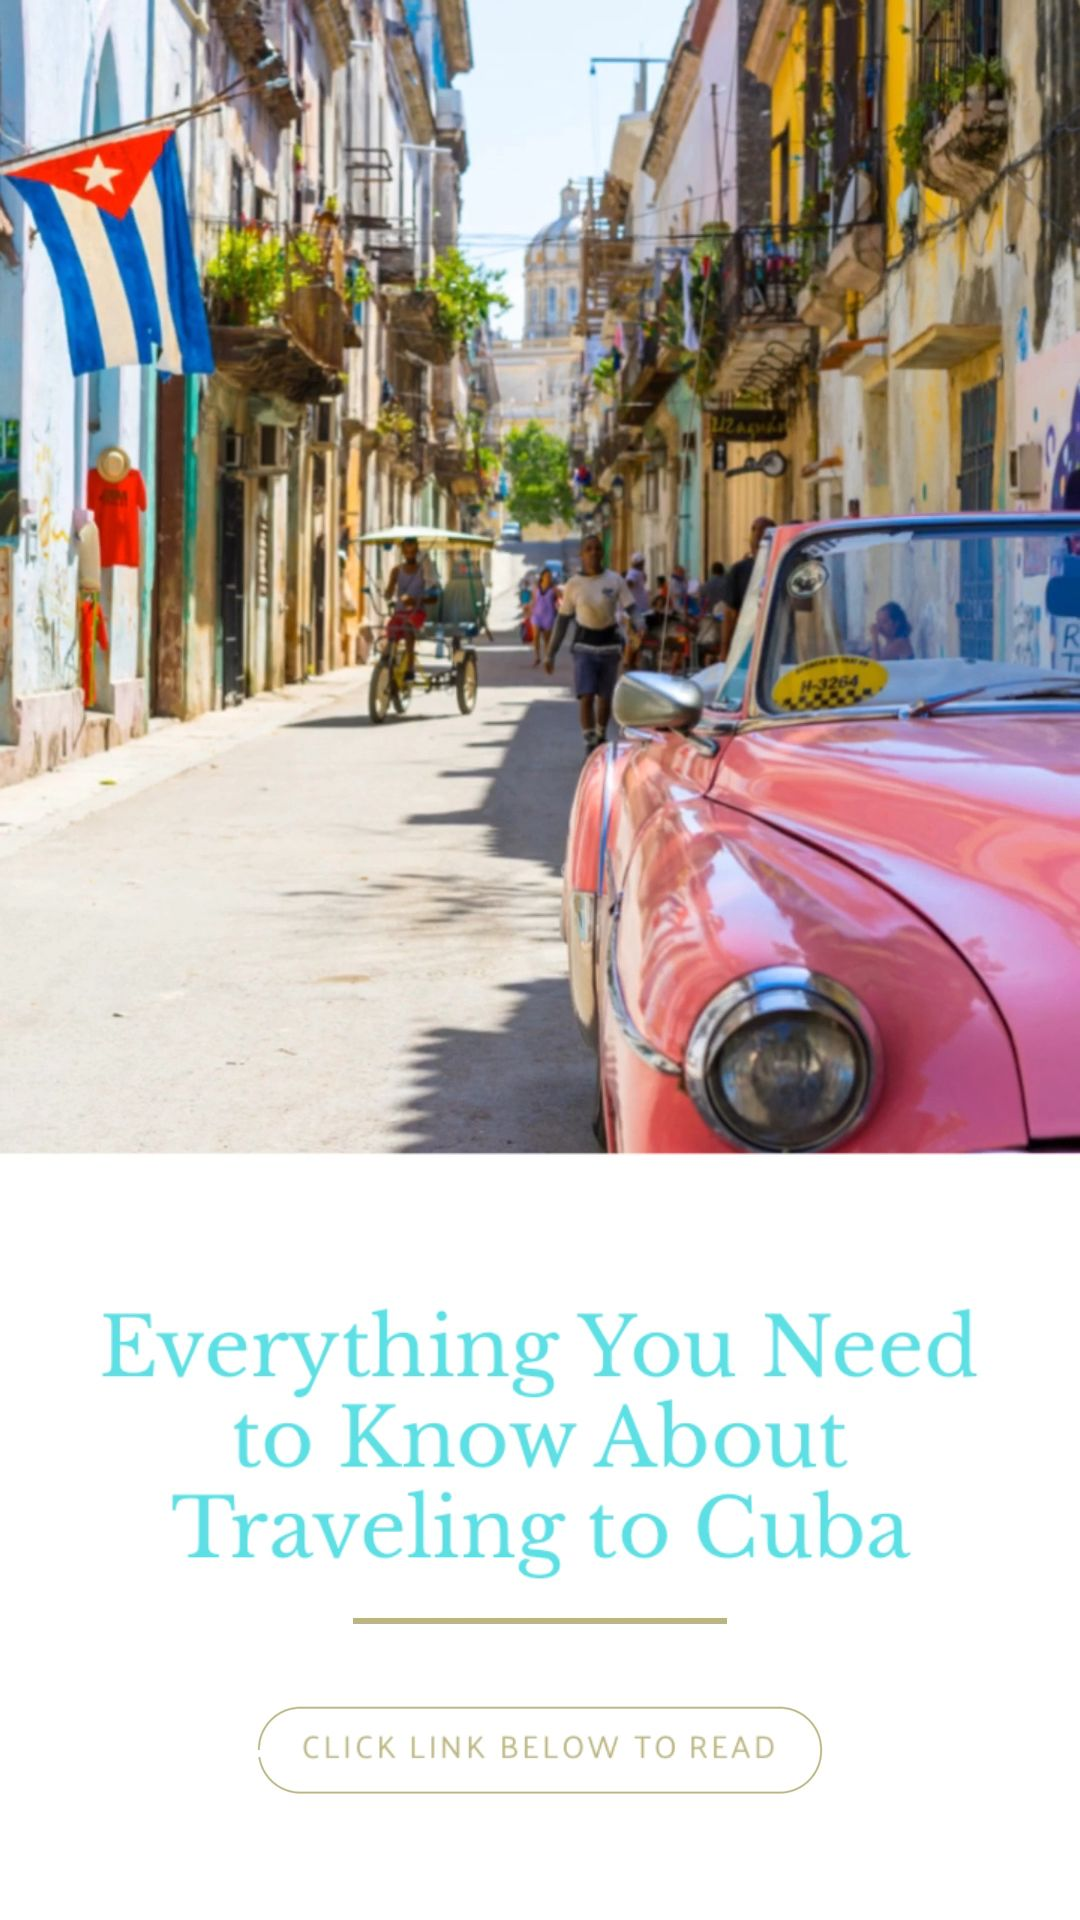 Everything you need to know about travelling to Cuba #cuba #travelguide #cubatravel #travelcuba #cubatravelguide #traveldestinations #traveltips